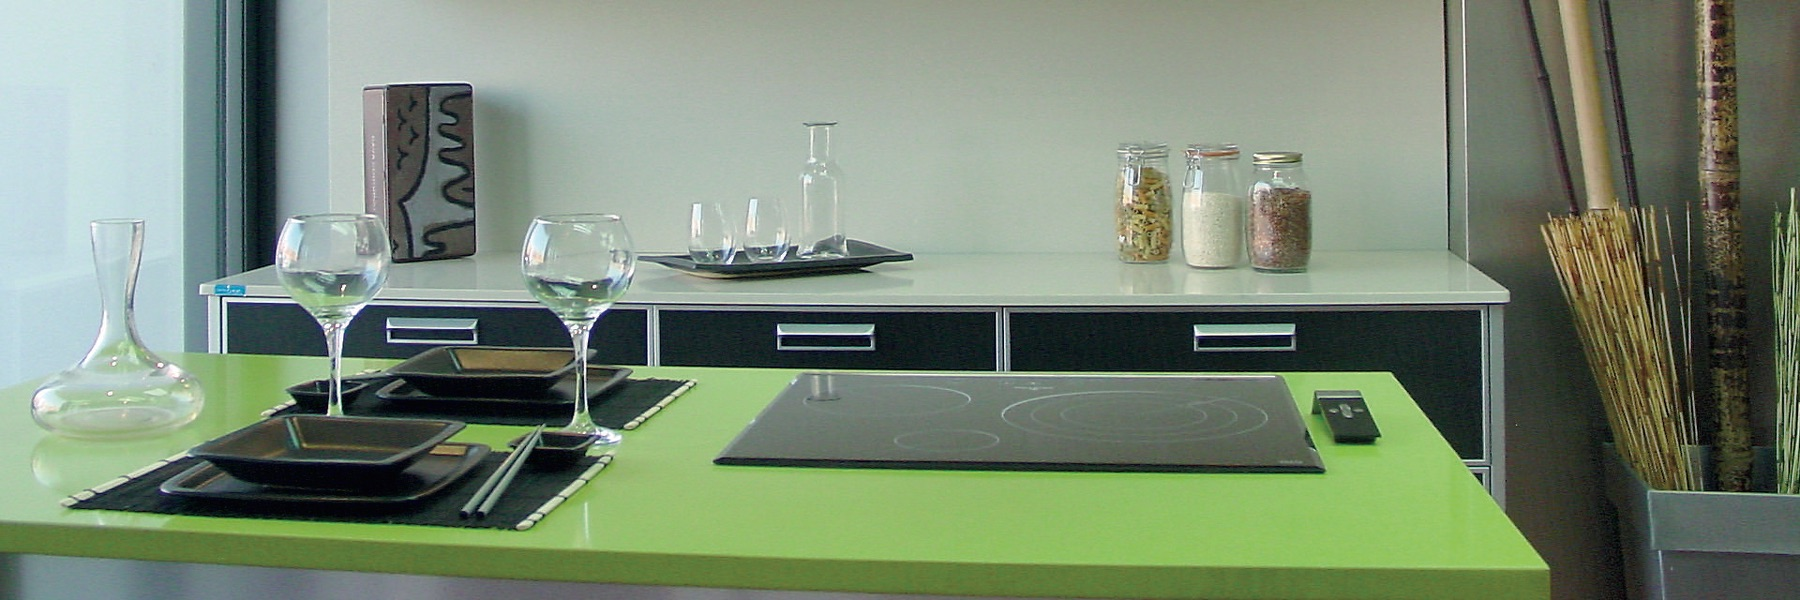 IM Design Aluminum Kitchen with Green Counter